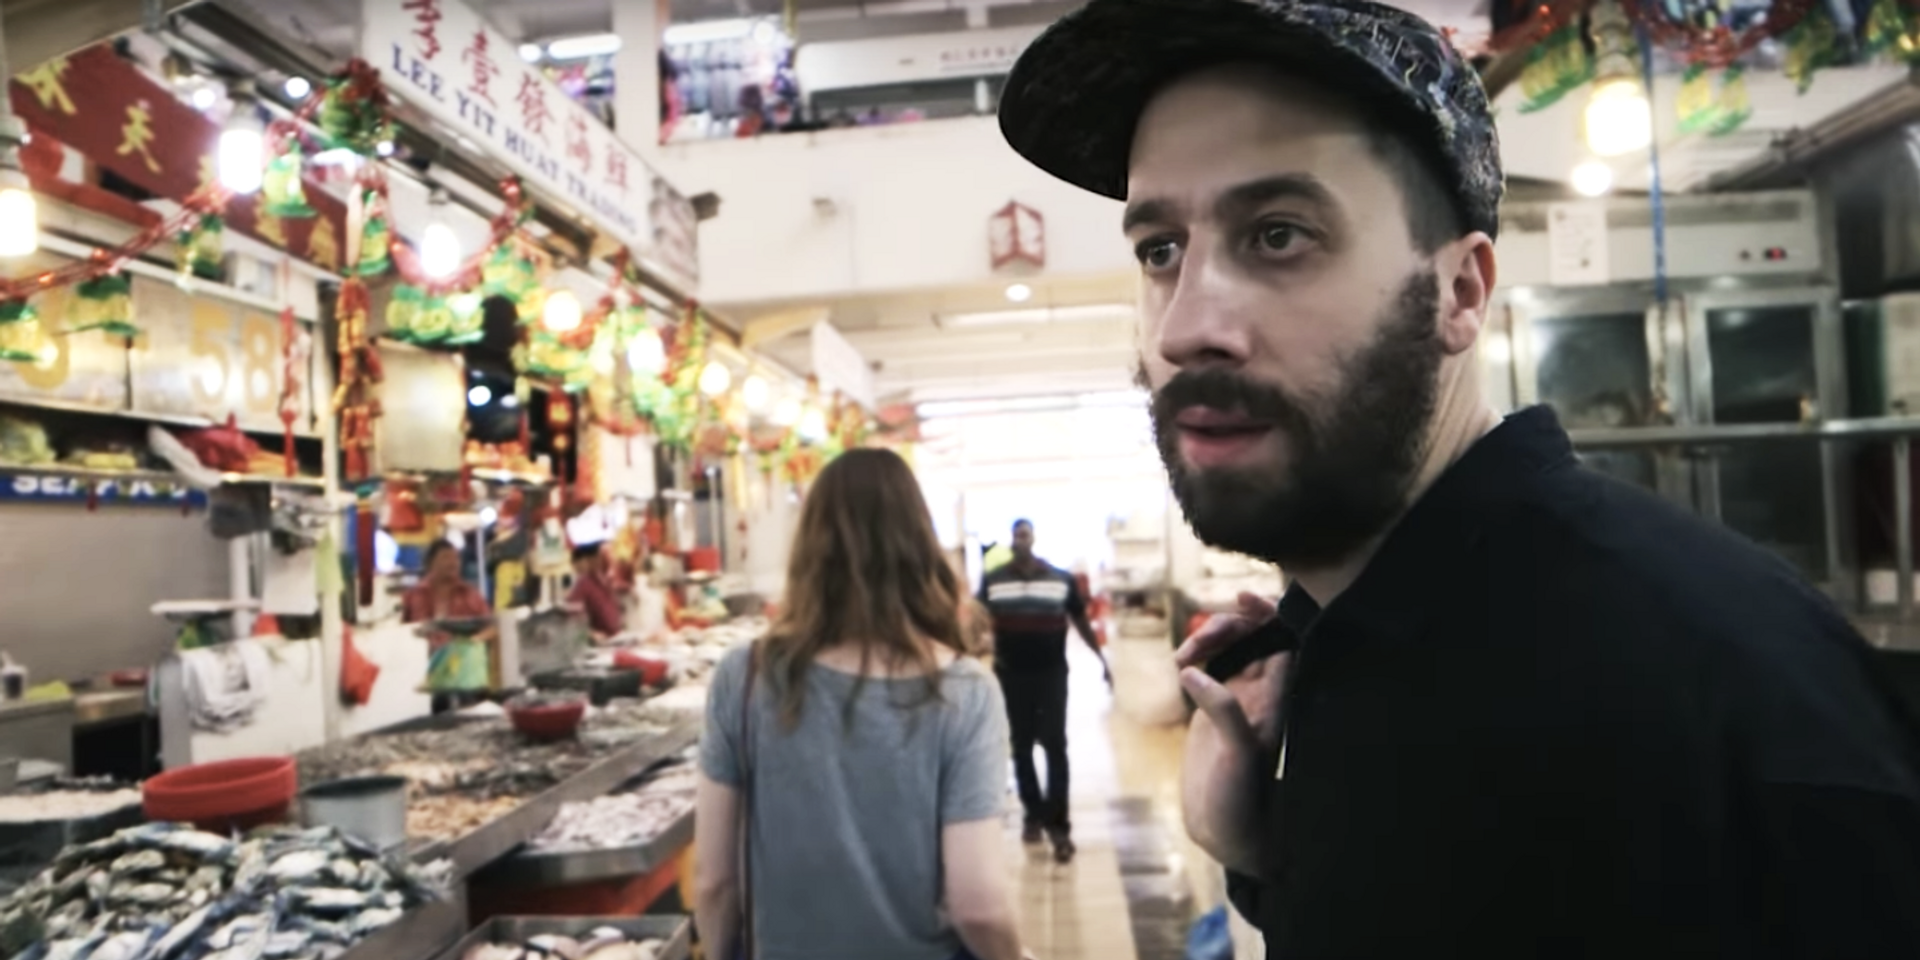 WATCH: Gold Panda geeks out over biryani in Little India